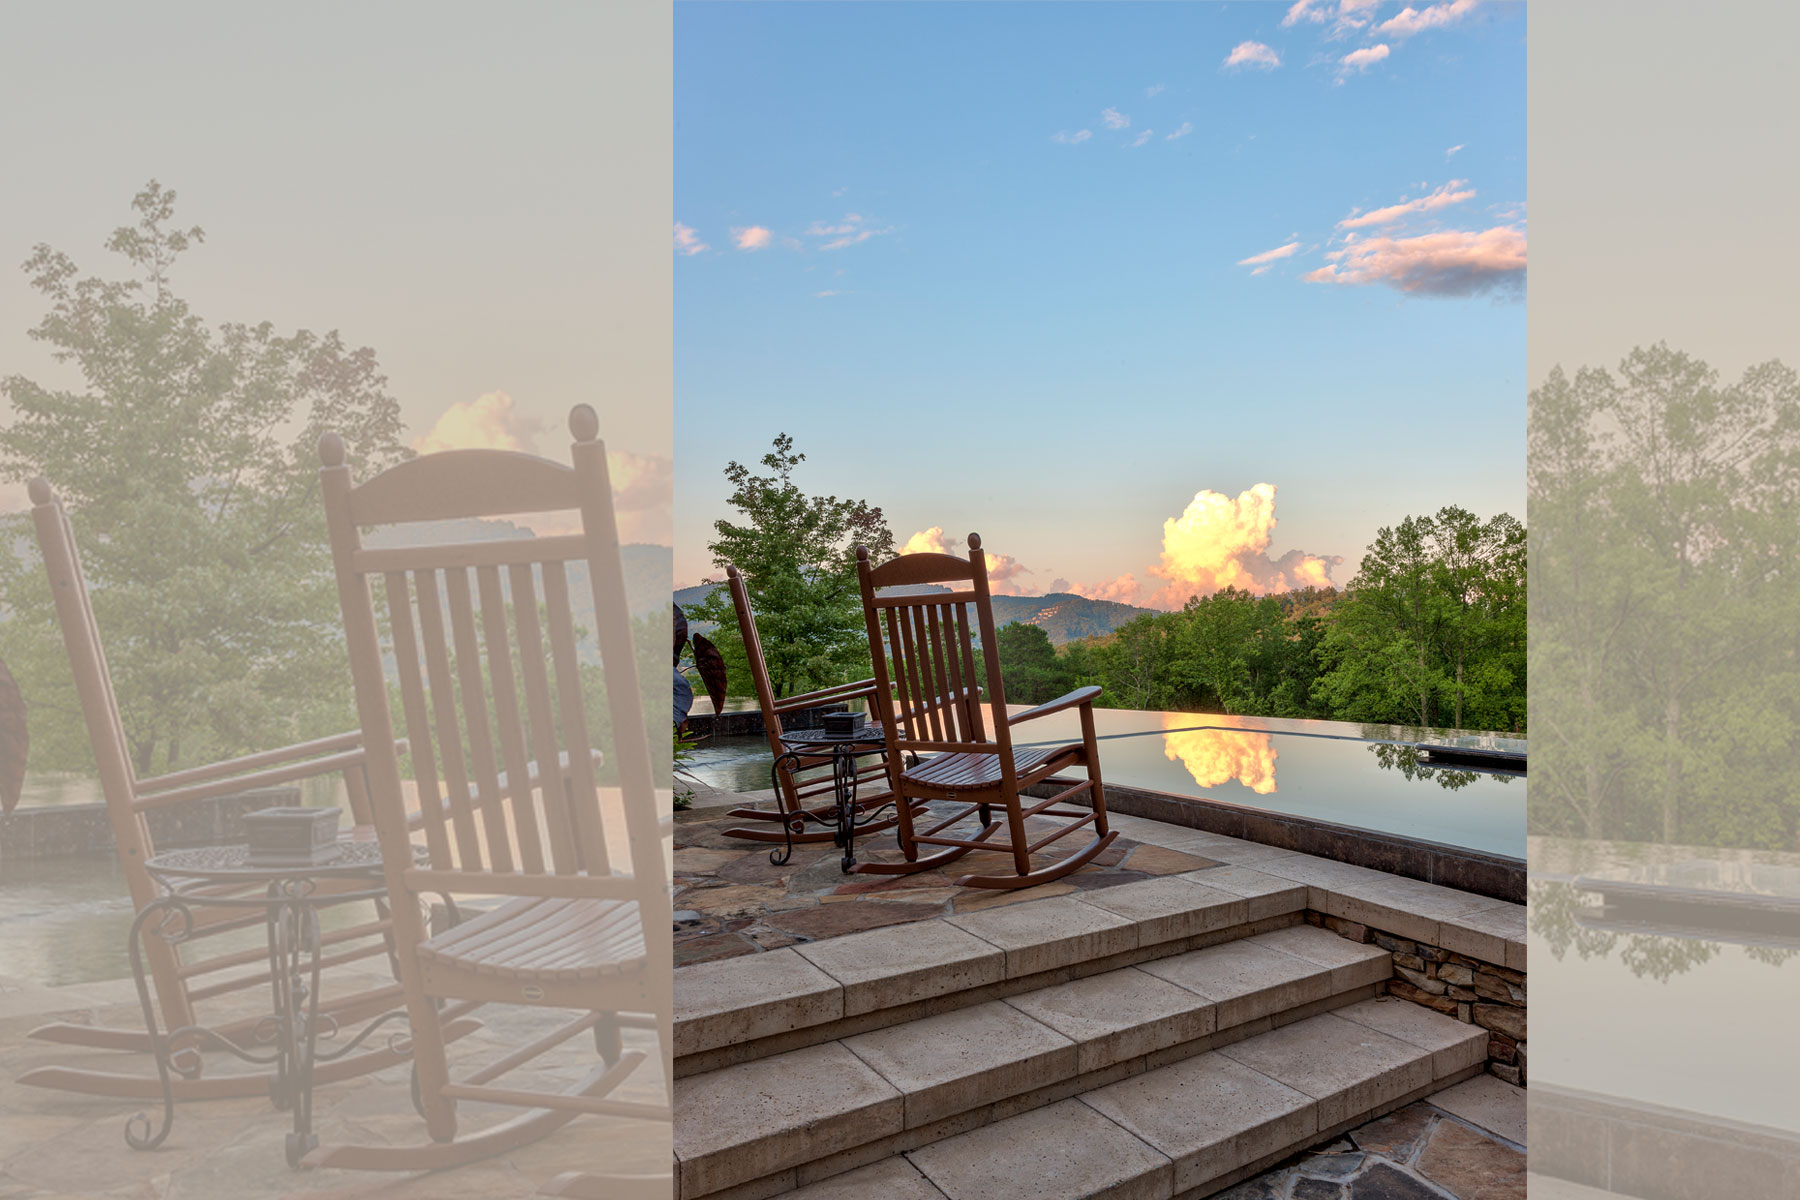 Poolside rocky chairs and stunning view in Asheville